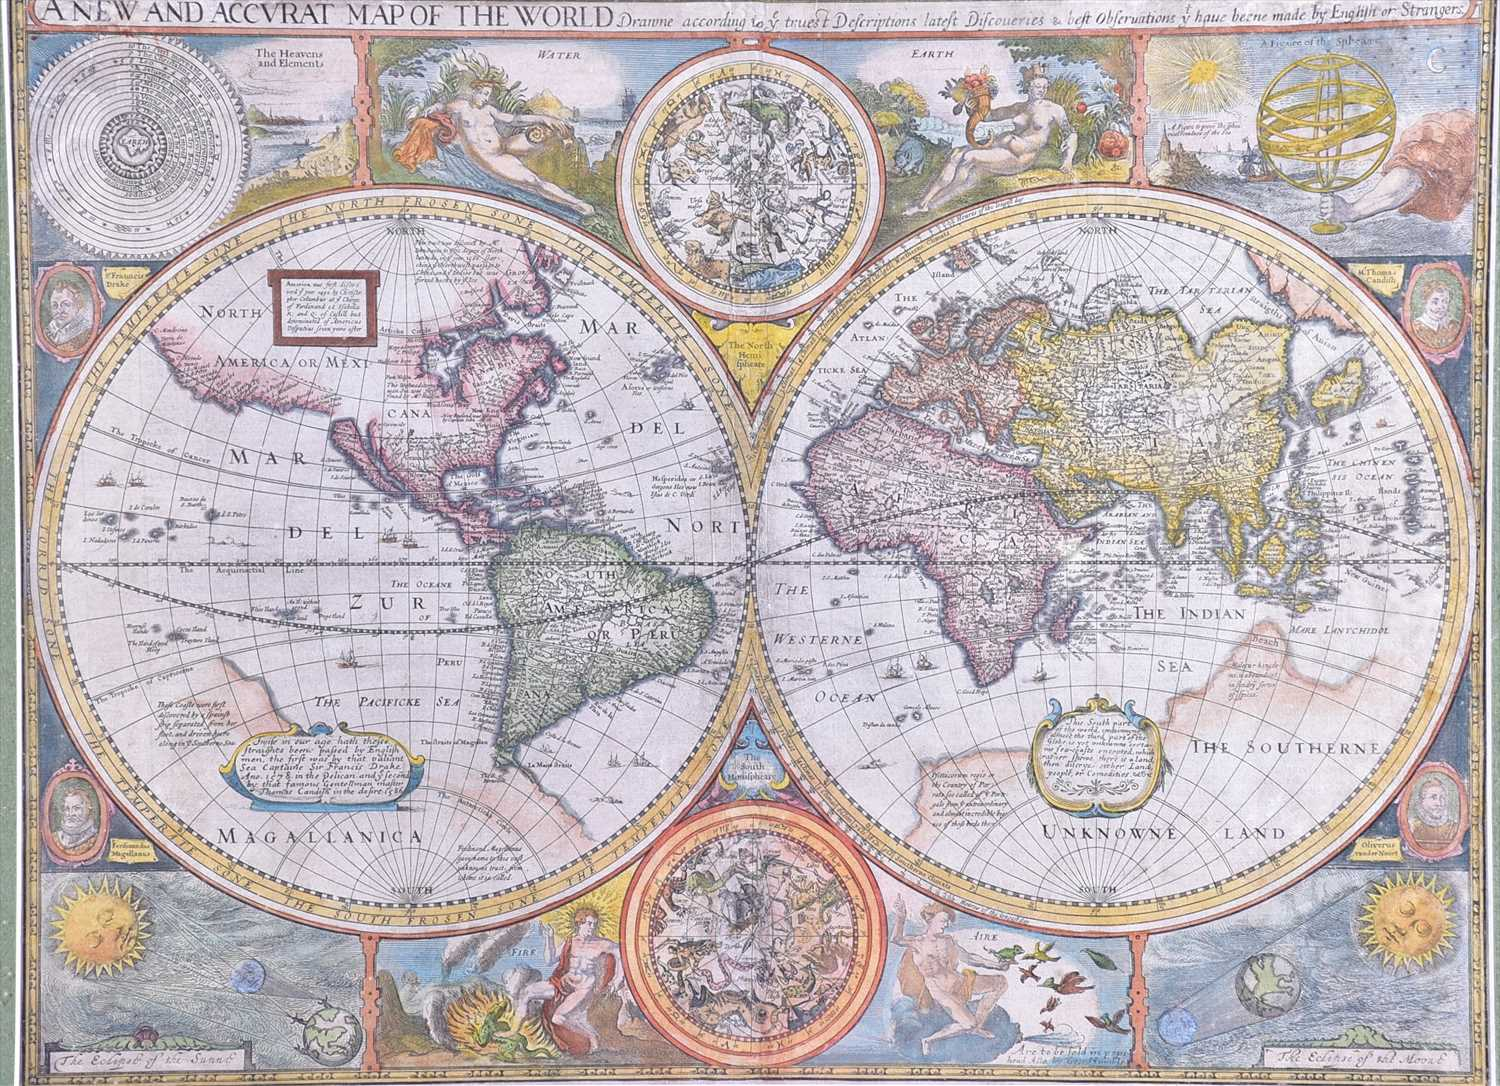 Lot 398 - A 17th century map of the world 'A new and...